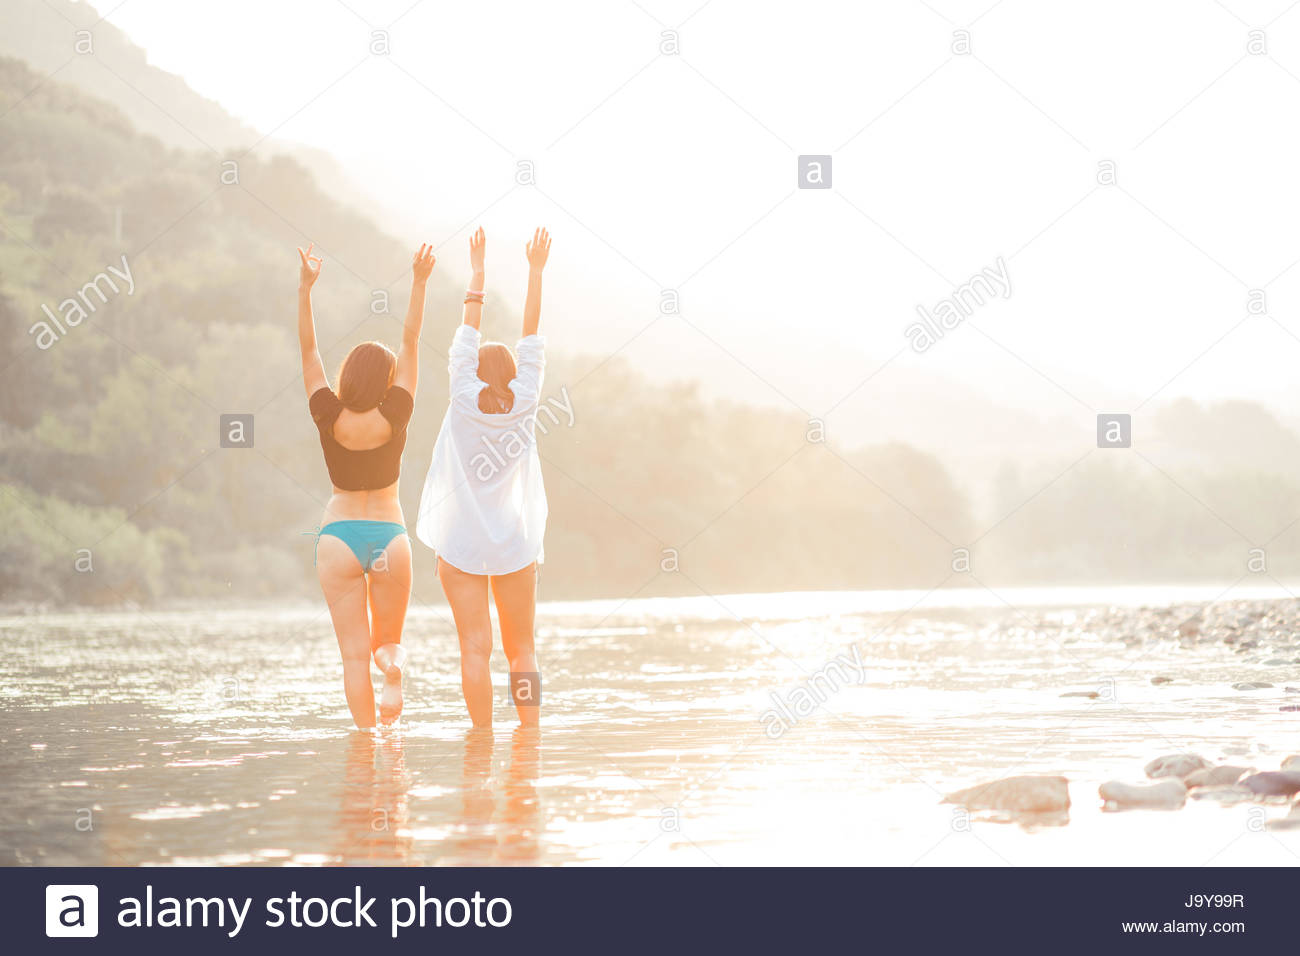 Young women on beach in sunset having good time - Stock Image